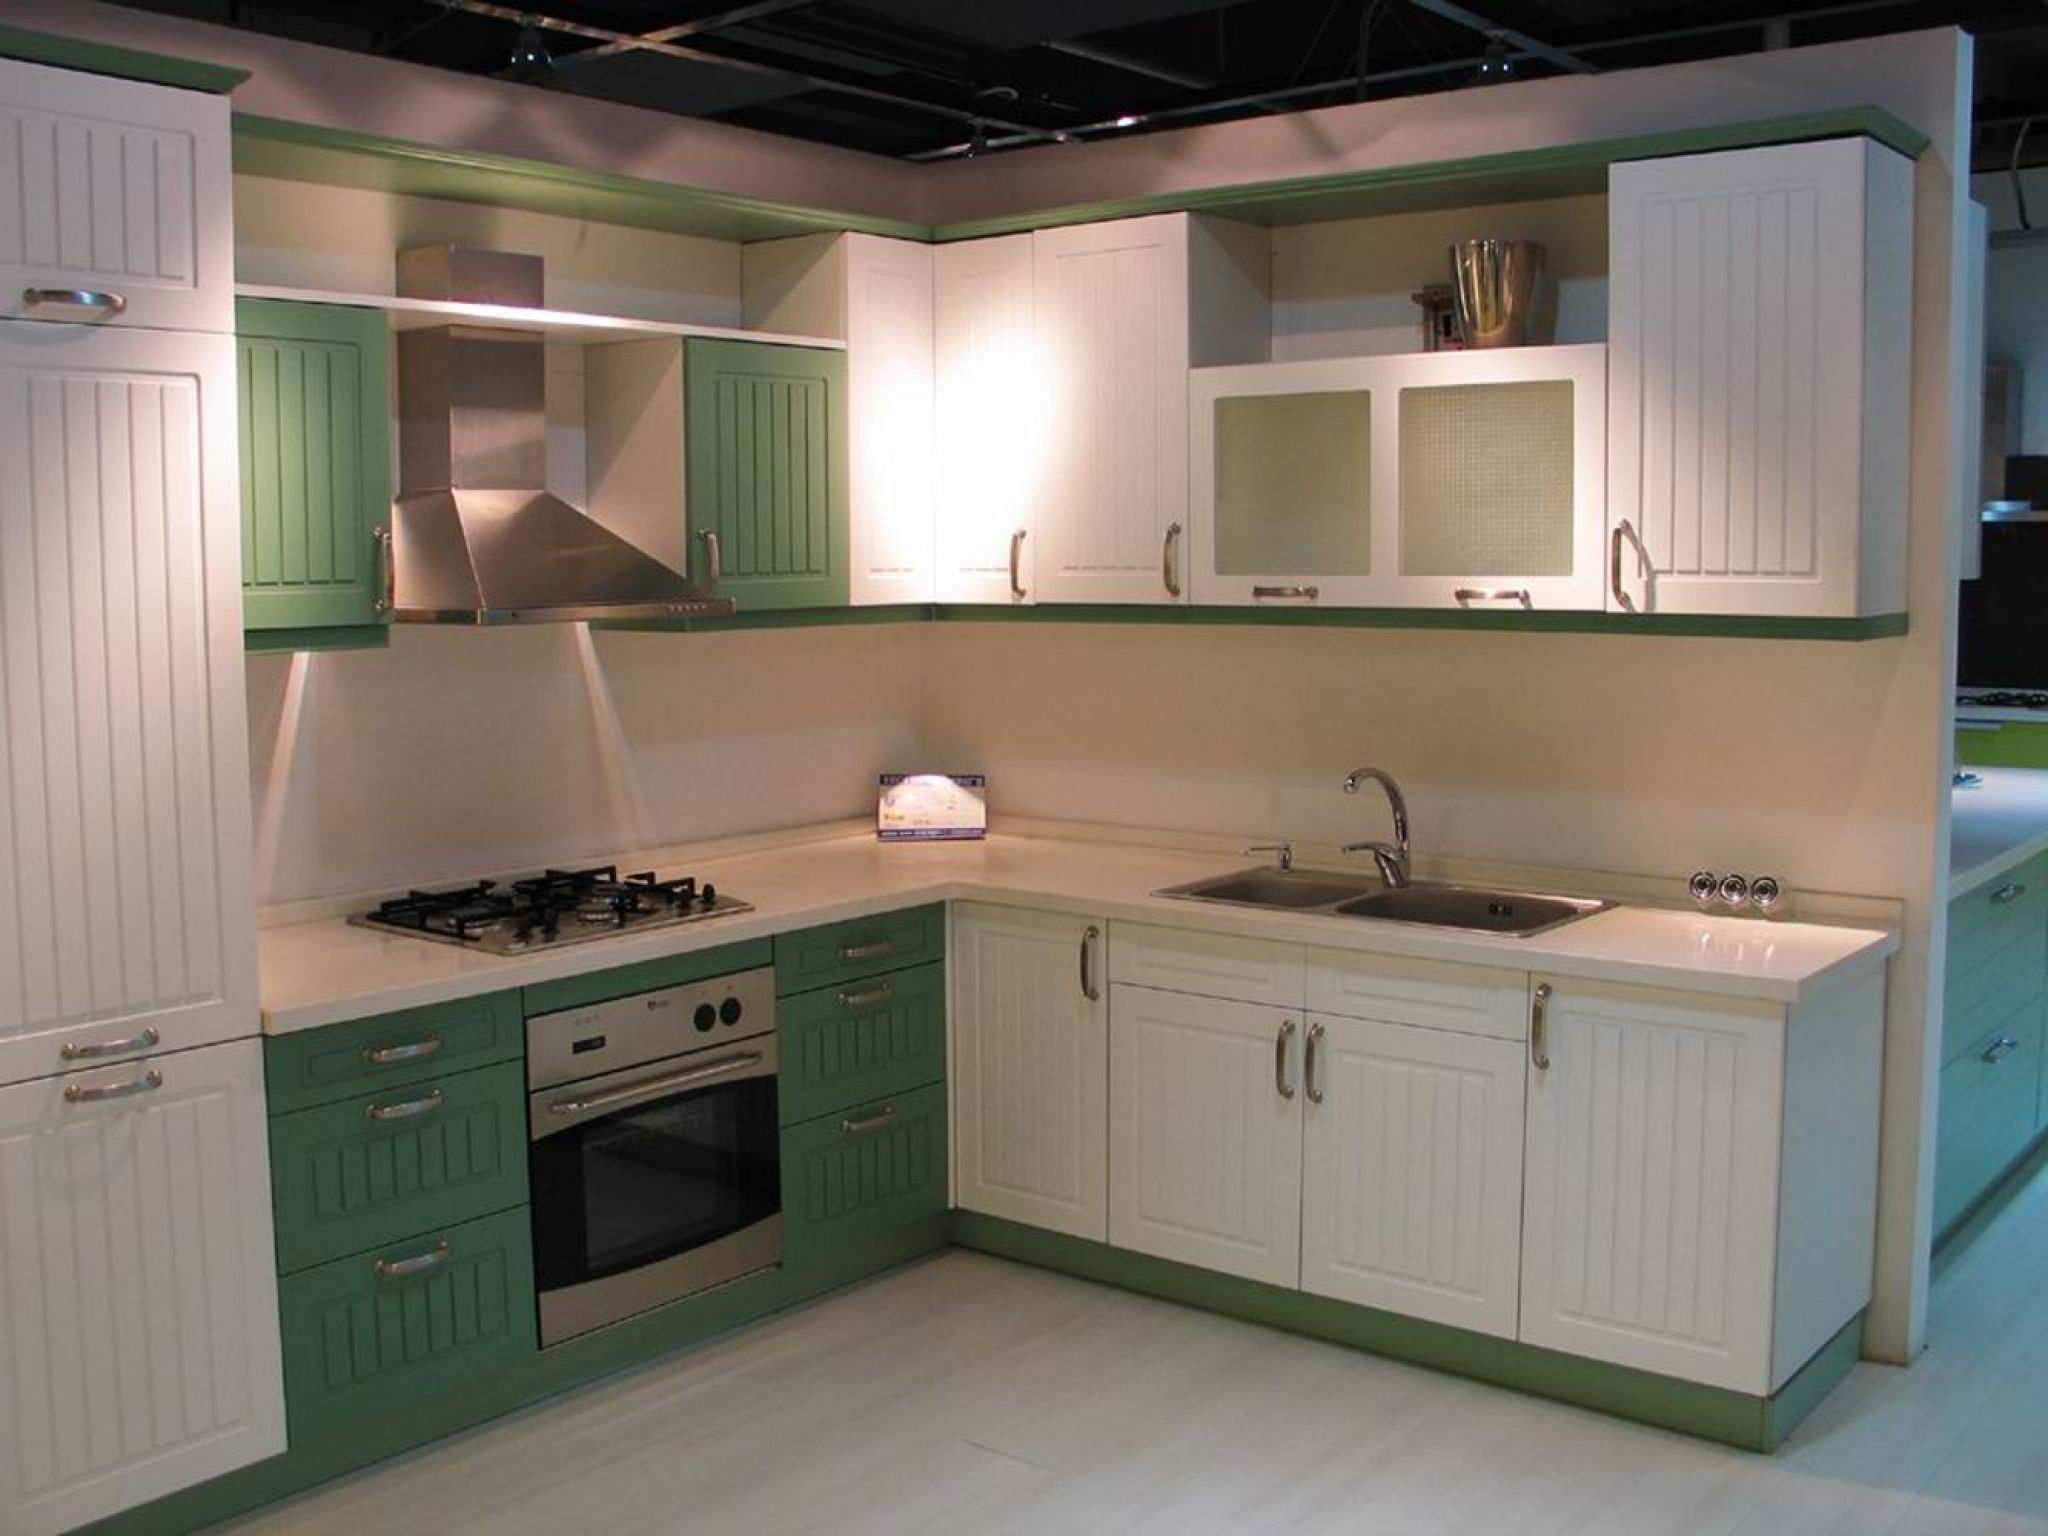 Foil Kitchen Cabinet Doors  Small Kitchen Remodel Ideas On A Extraordinary Cheap Kitchen Remodel Ideas Review